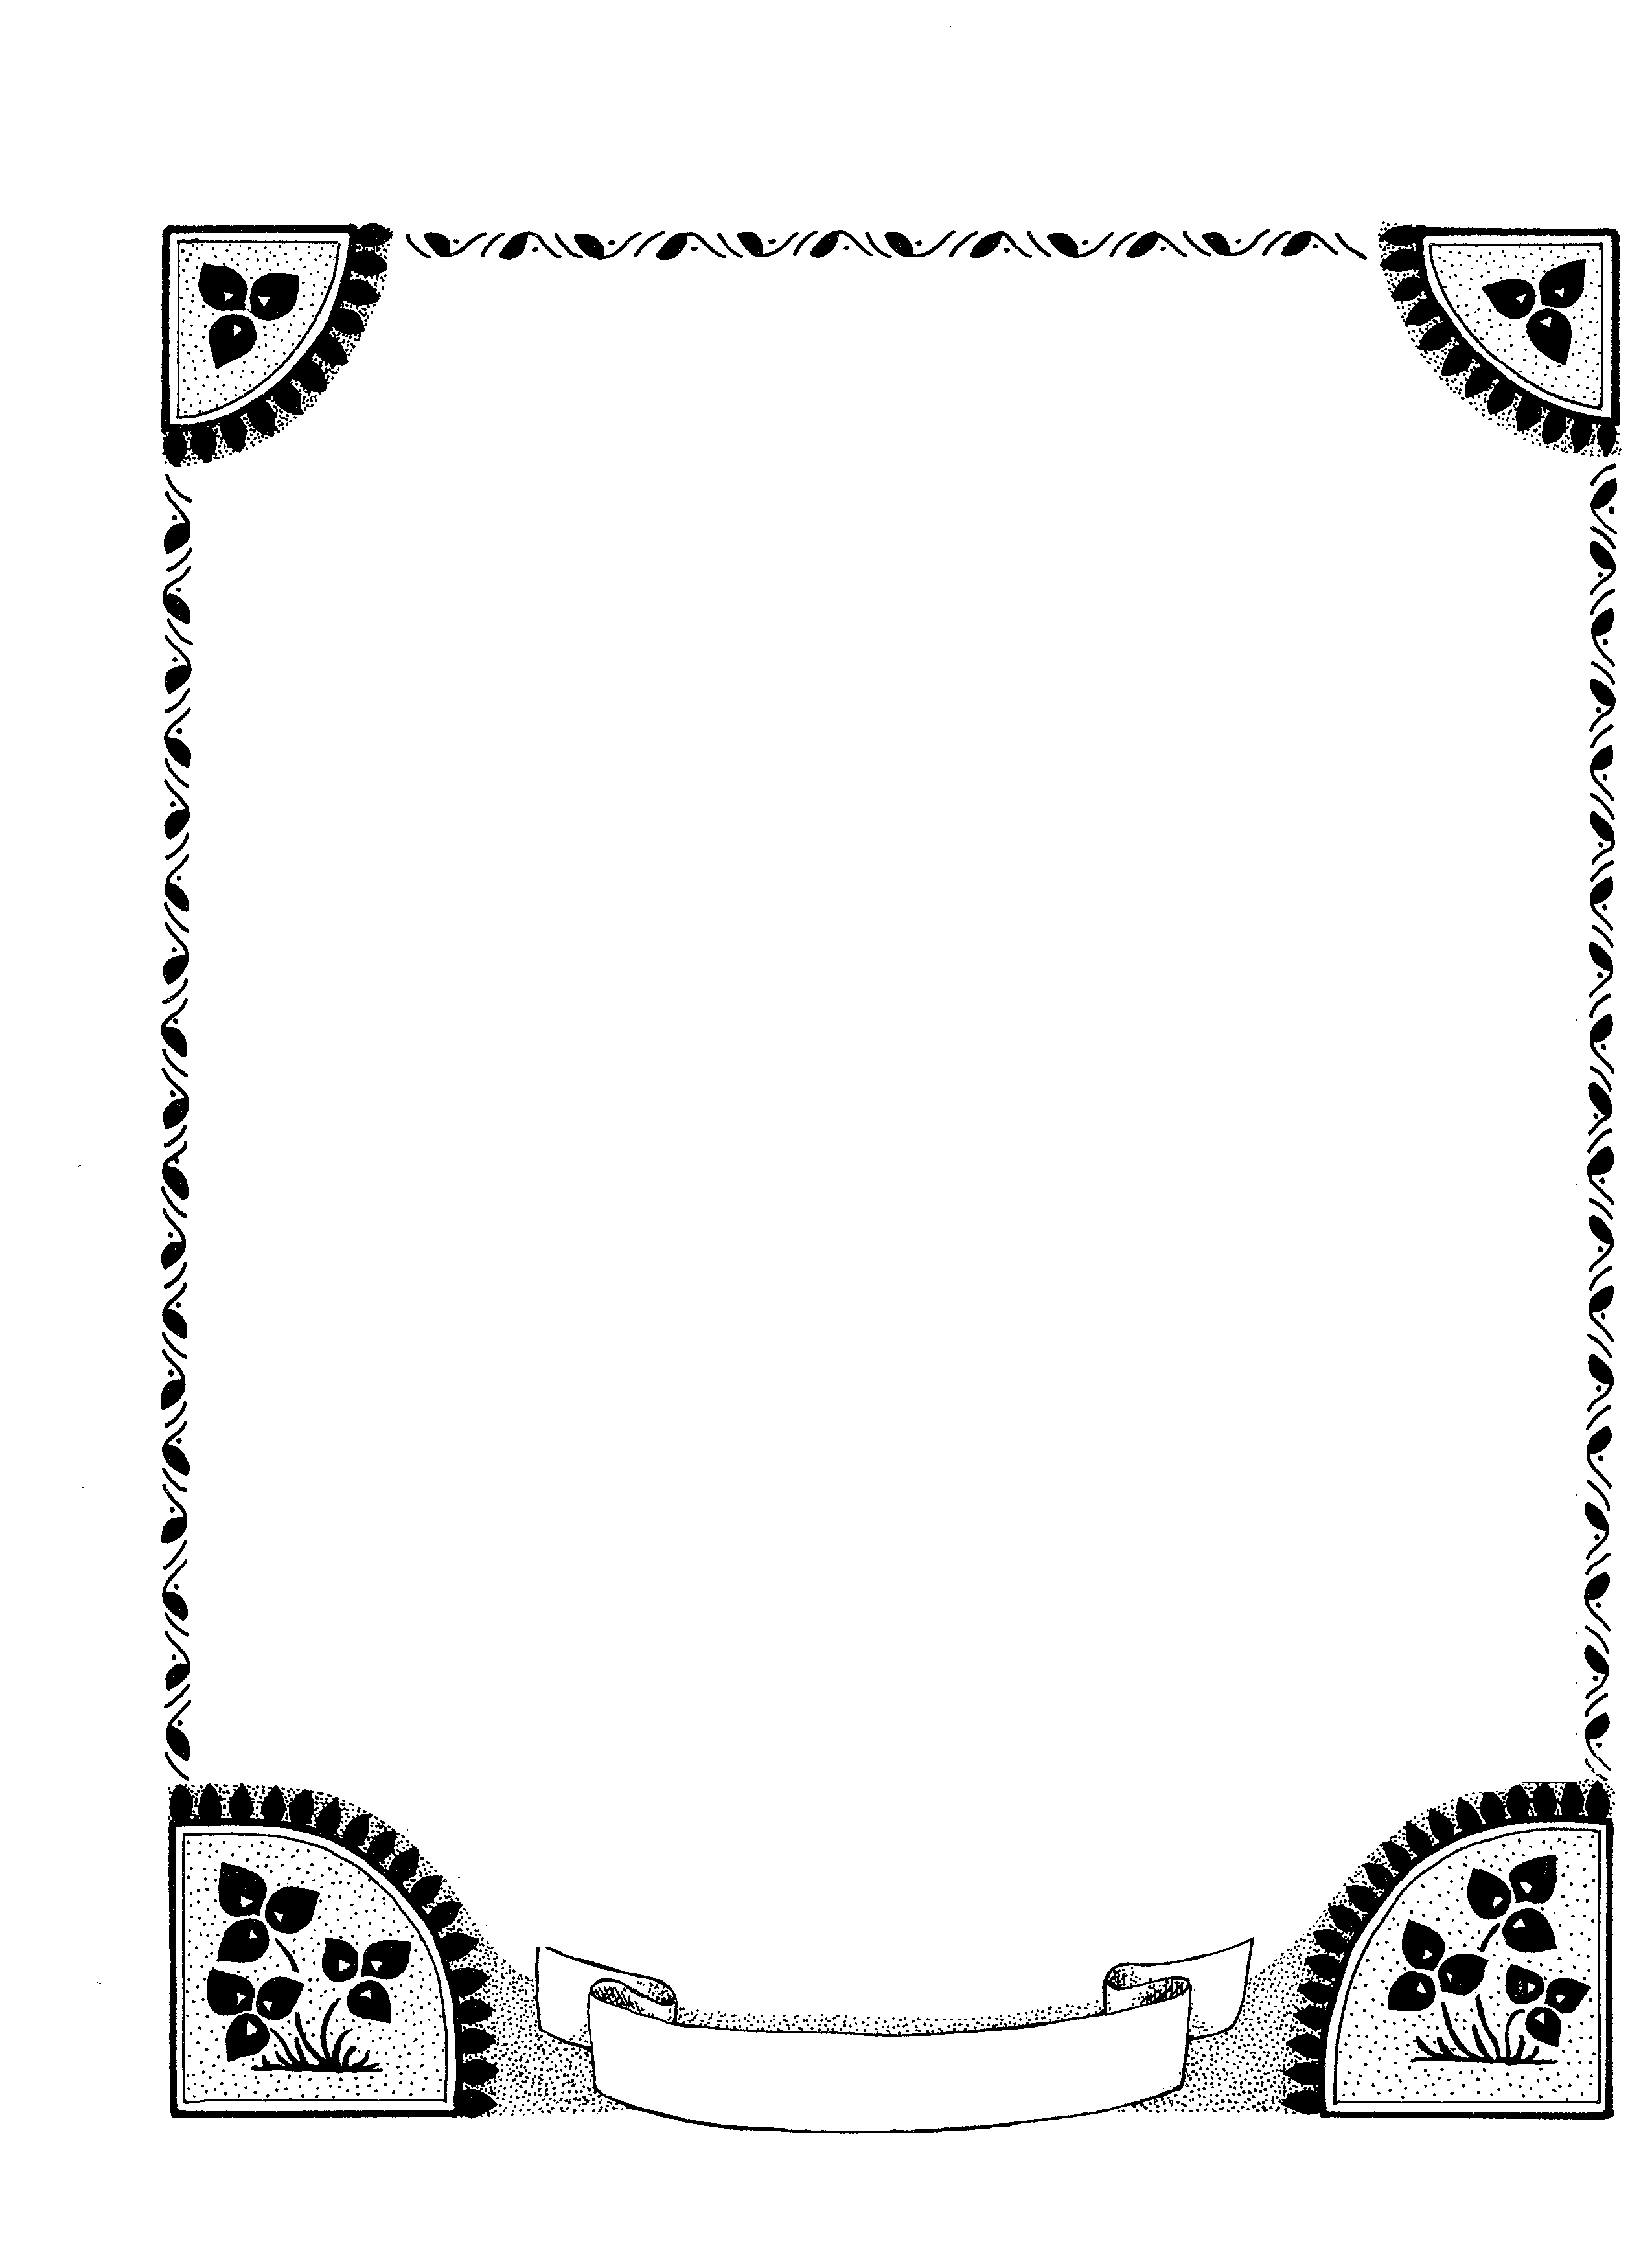 Free Simple Page Border Designs Download Free Clip Art